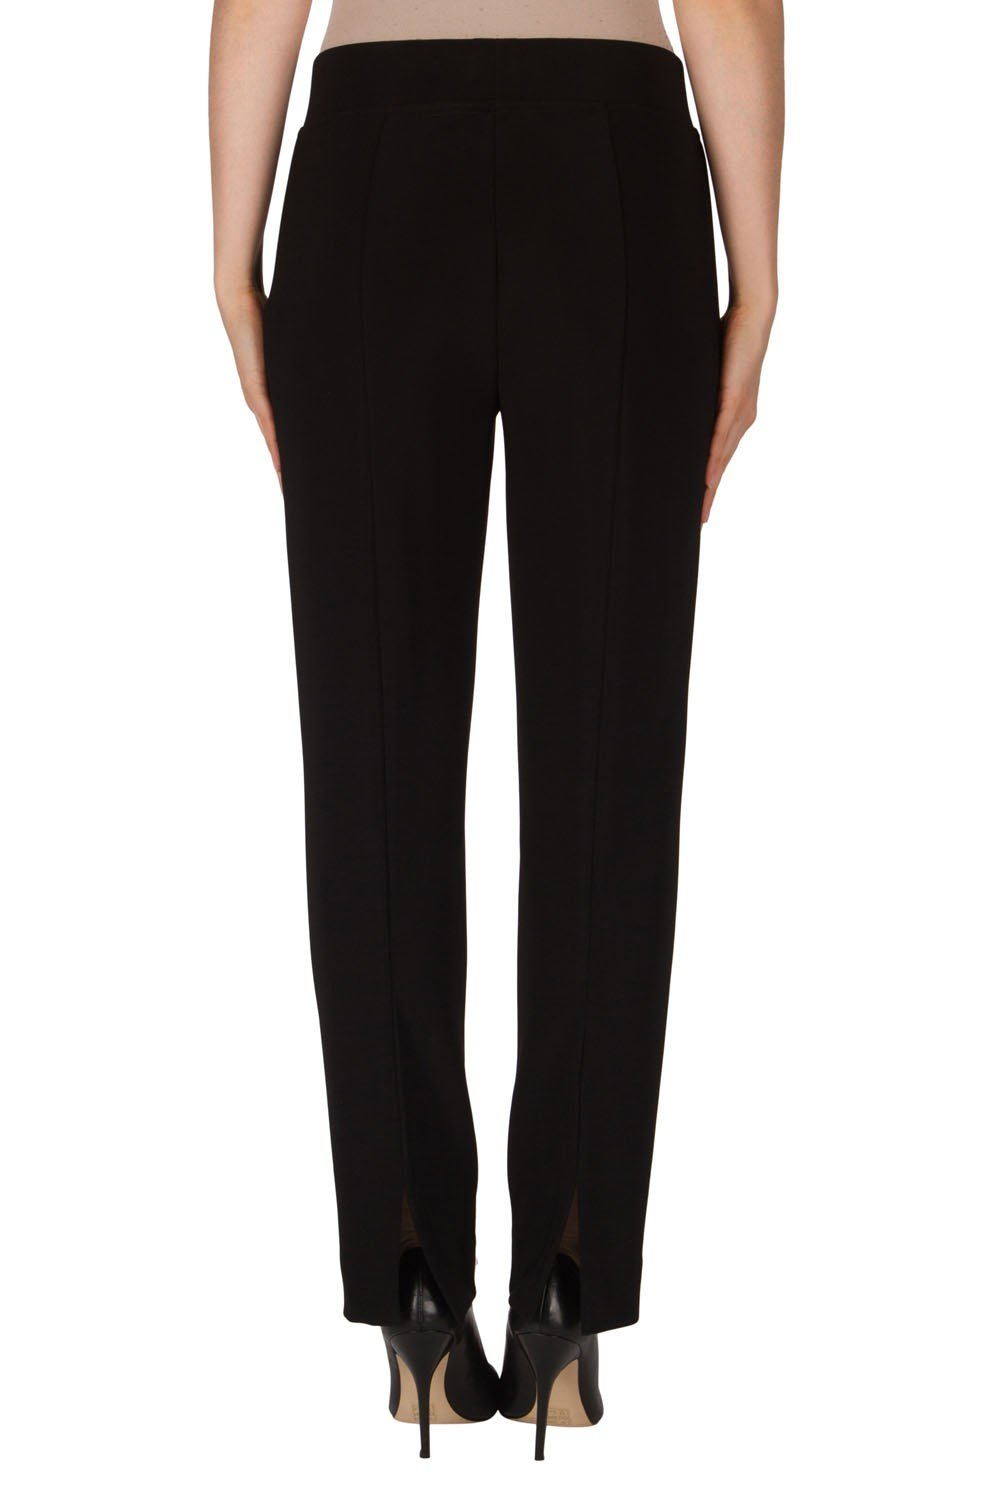 Image of Joseph Ribkoff Pant Style 143105 Best Price On Sale